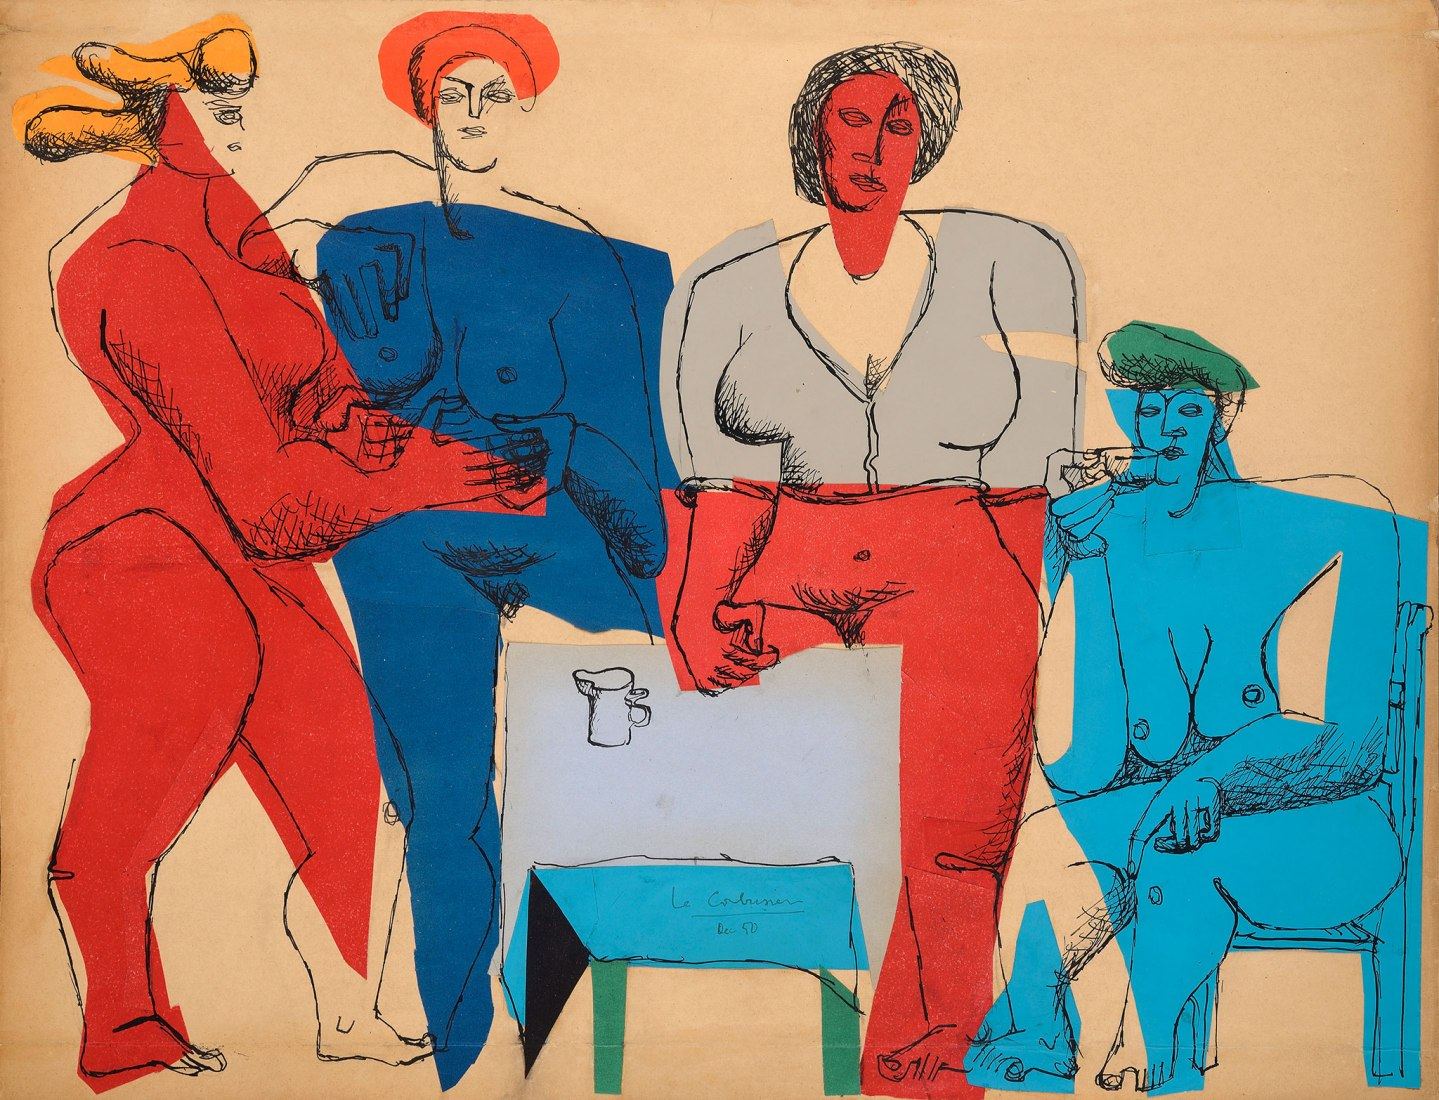 Quatre femmes autour d'une table, 1950. Ink and collage of colored papers on paper. Signed. 50 x 65 cm. Imagen cortesía Galería Guillermo de OsmaImage courtesy Guillermo de Osma Gallery